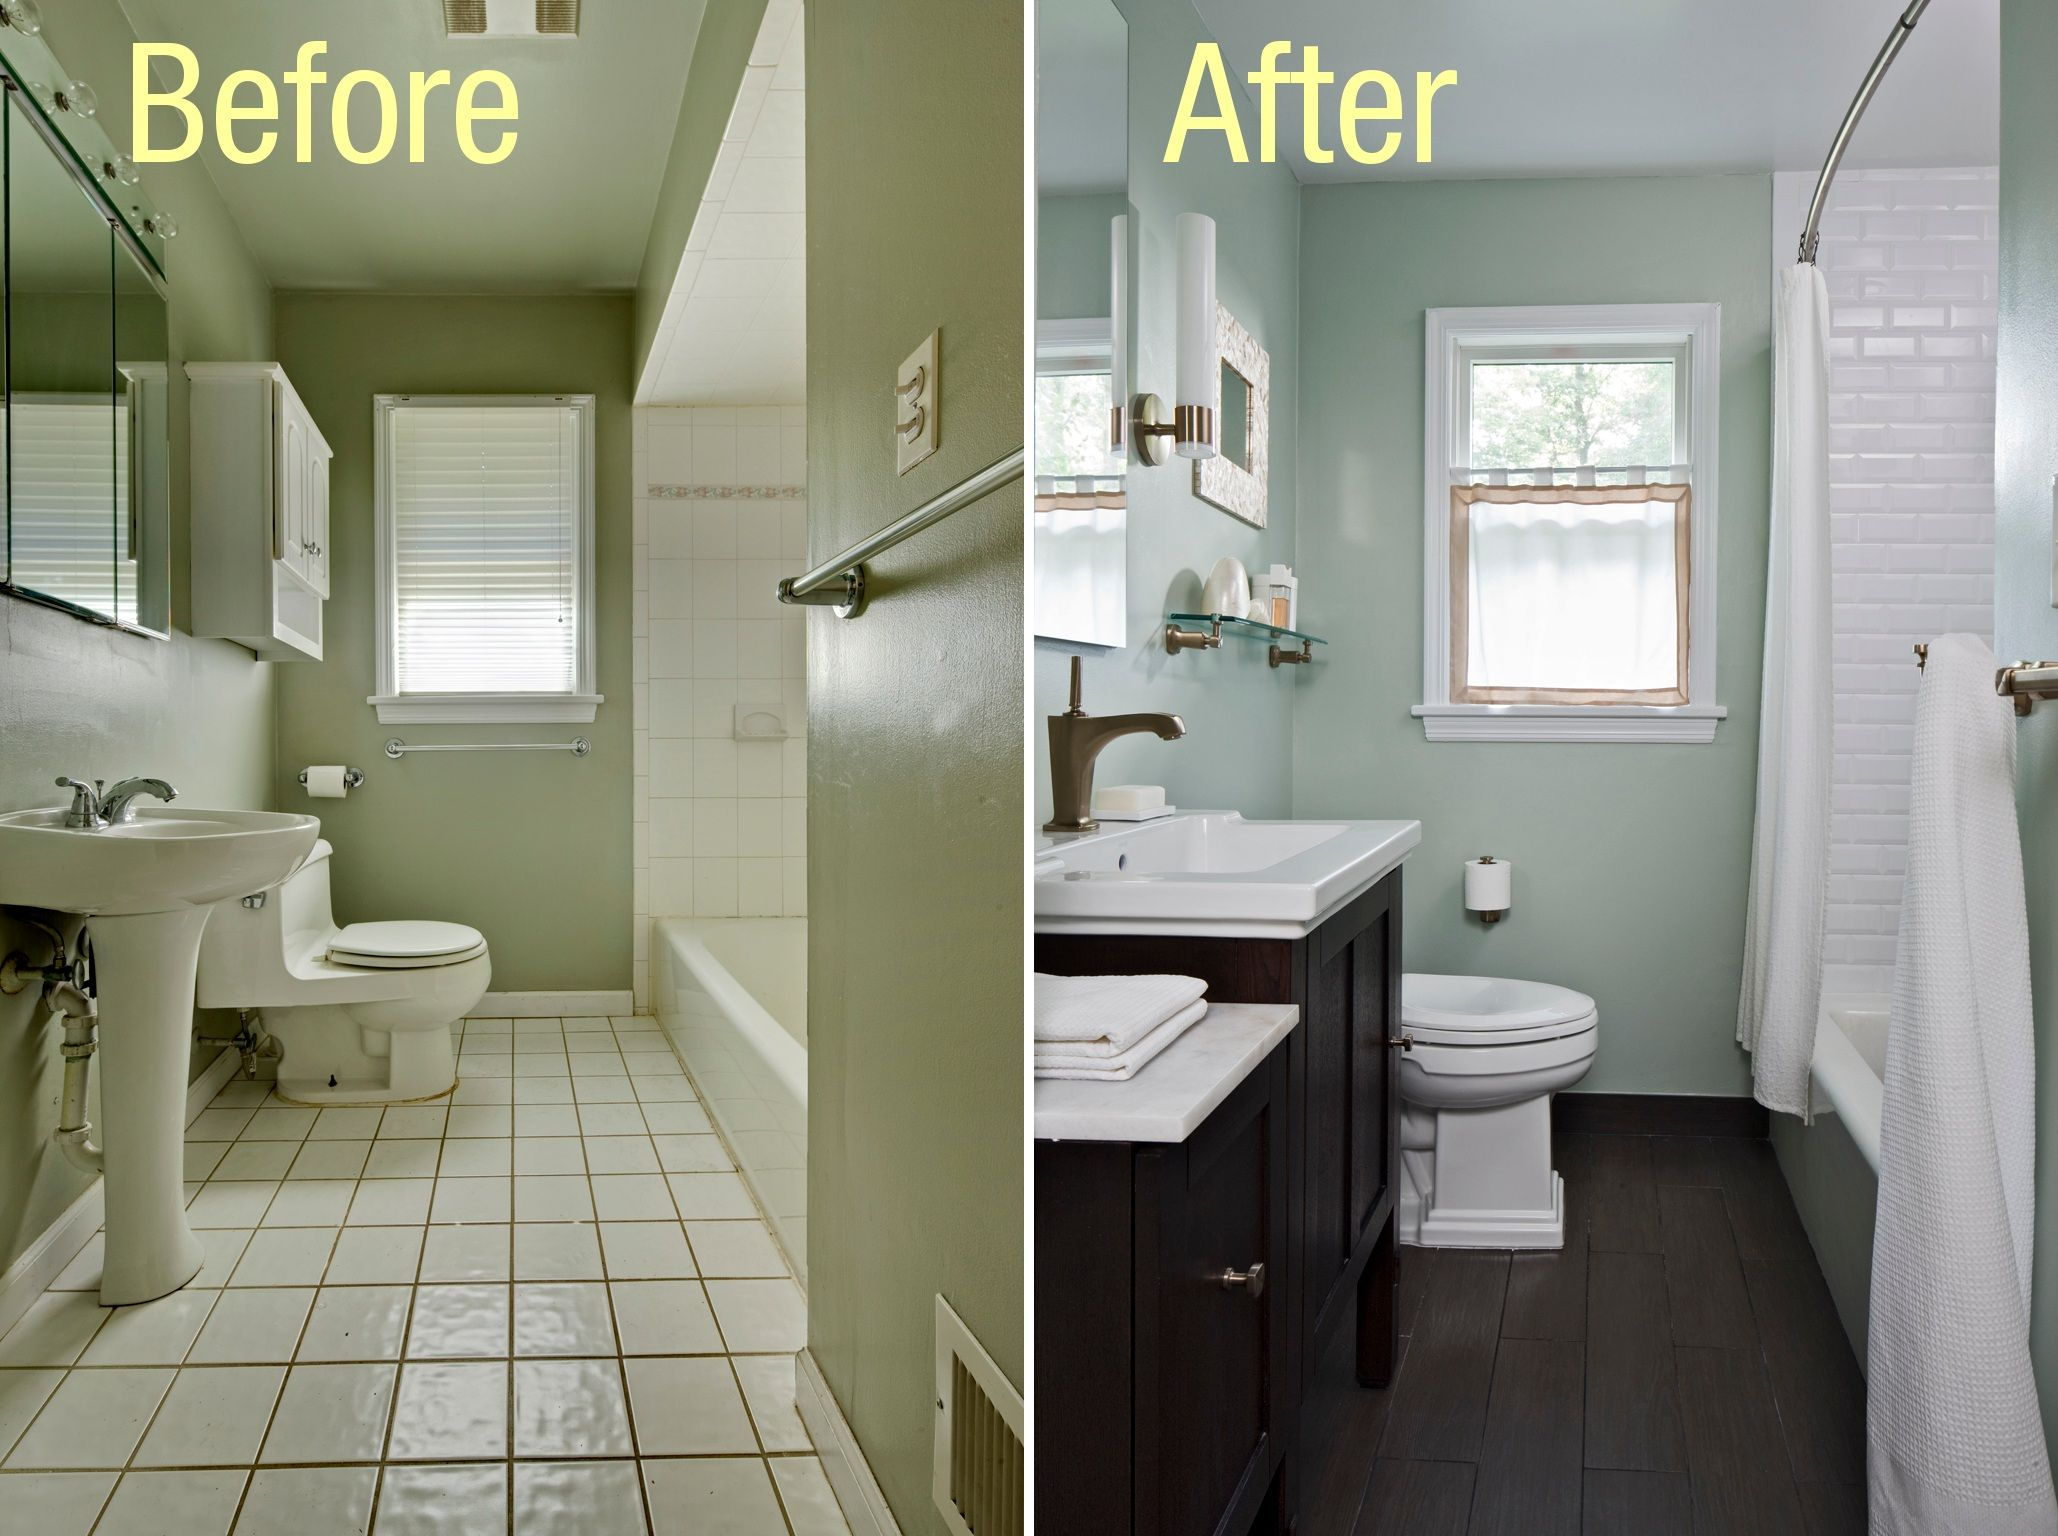 Small Bathroom Designs For Older Homes bathroom-vanities-before-and-after-photos-of-bathroom-renovations